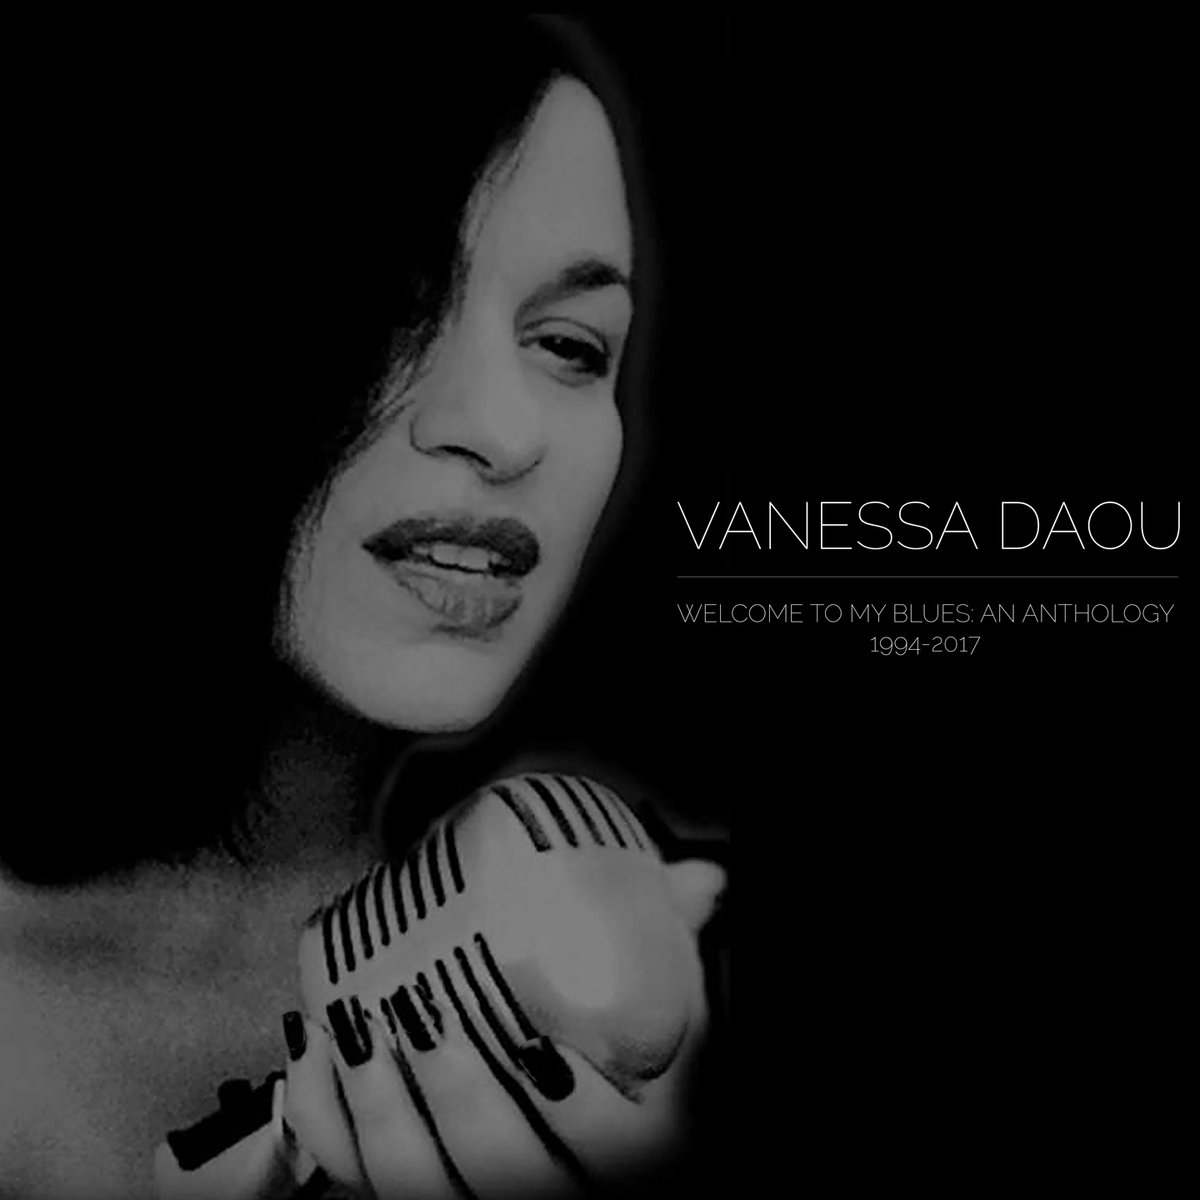 Vanessa DaouWelcome to My Blues: An Anthology (1994-2017) - DAOU TEMPO, 2016